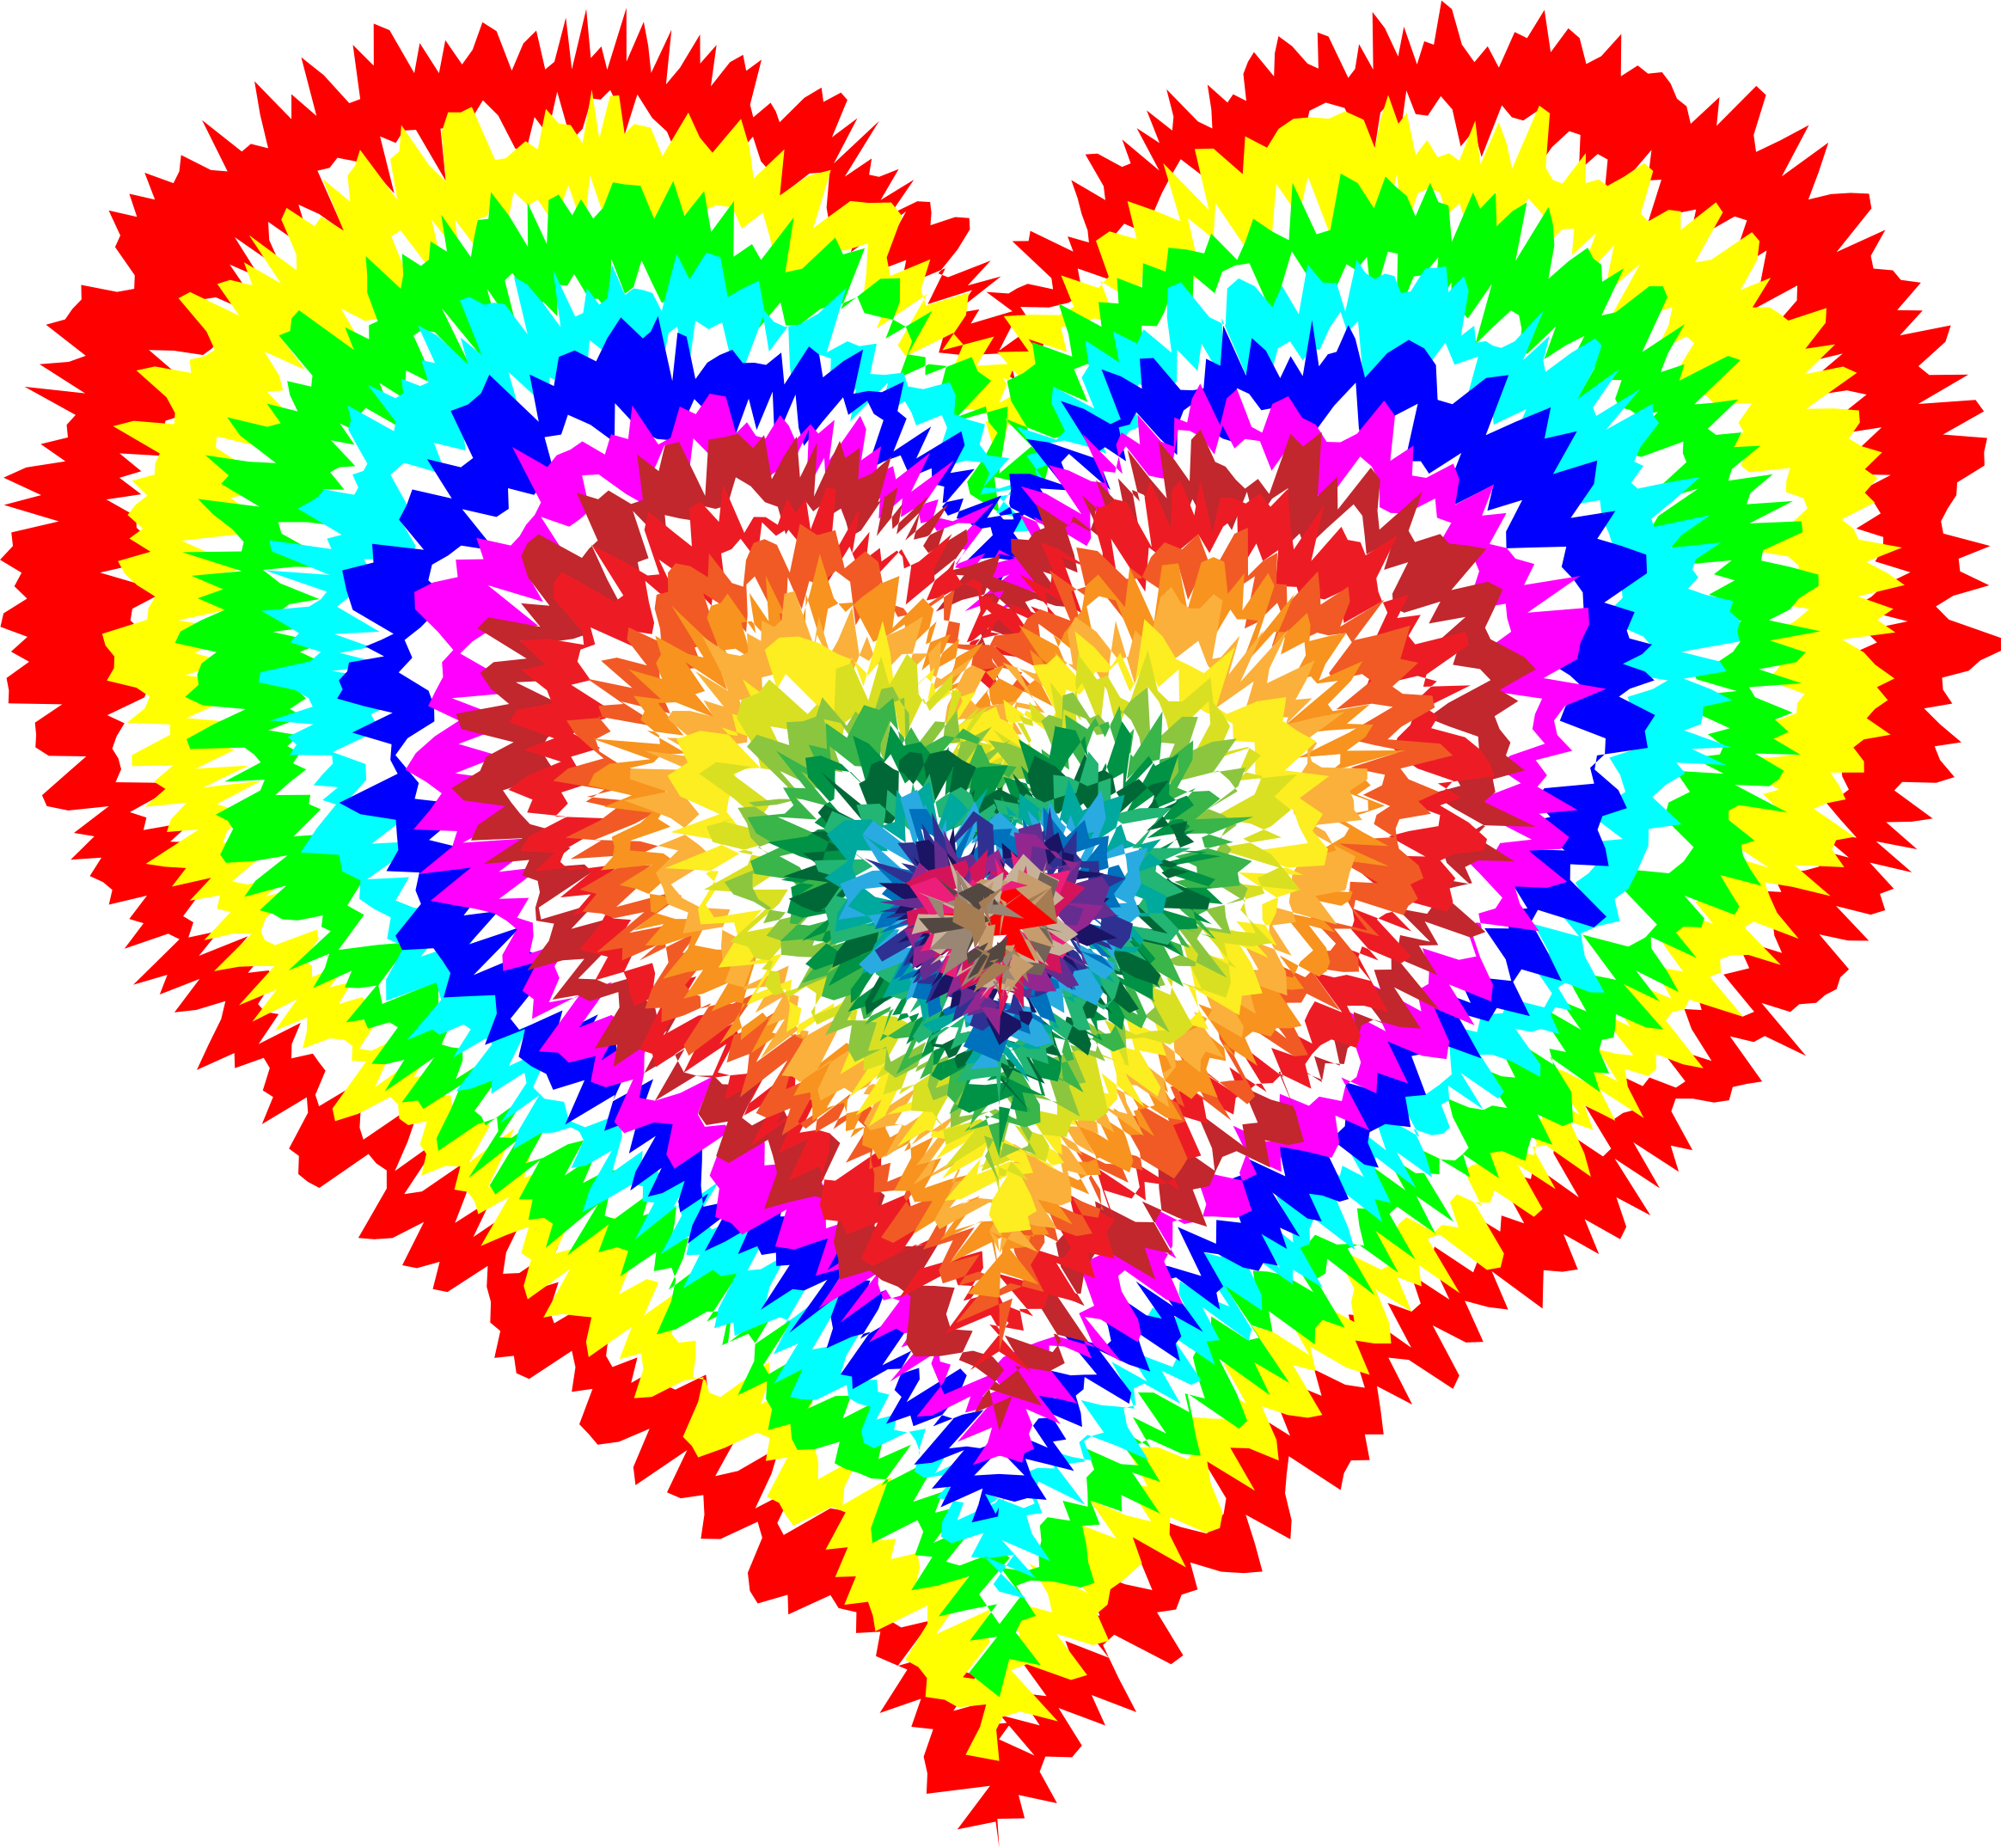 clipart tie dye heart look at all the pretty colors pinterest rh pinterest com tie dye t shirt clip art tie dye pattern clip art